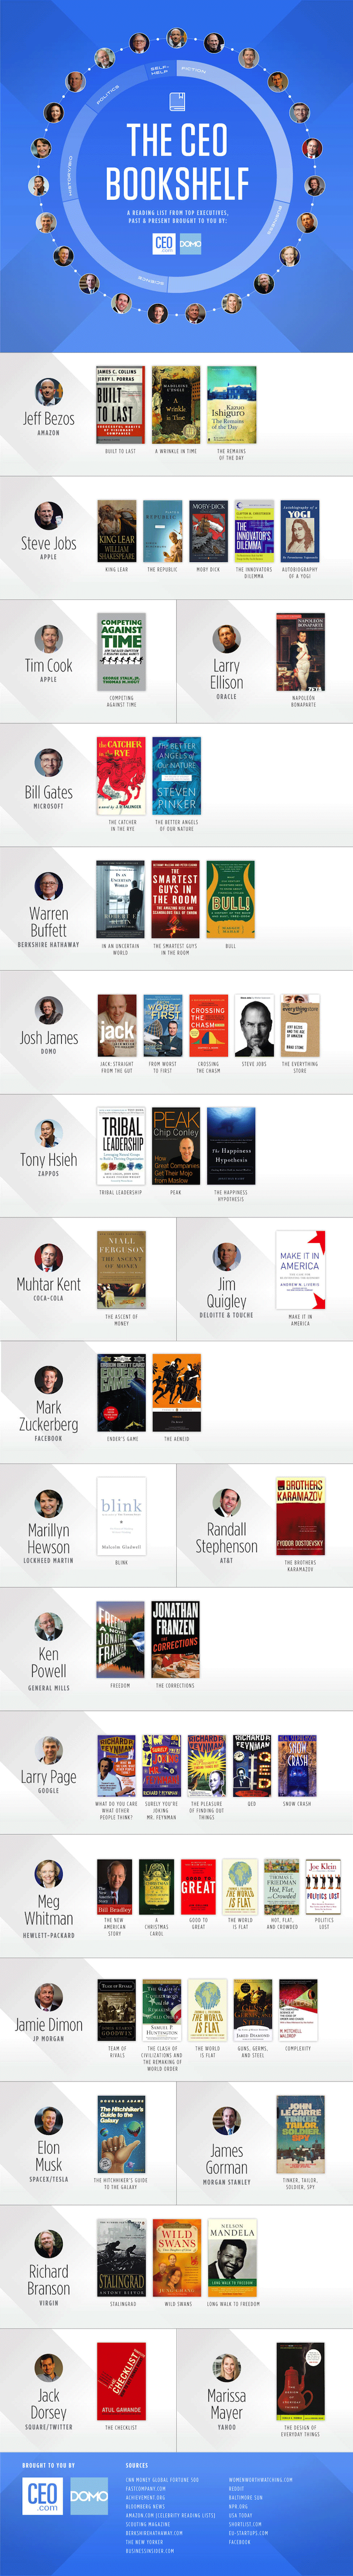 ceo-favorite-books.png